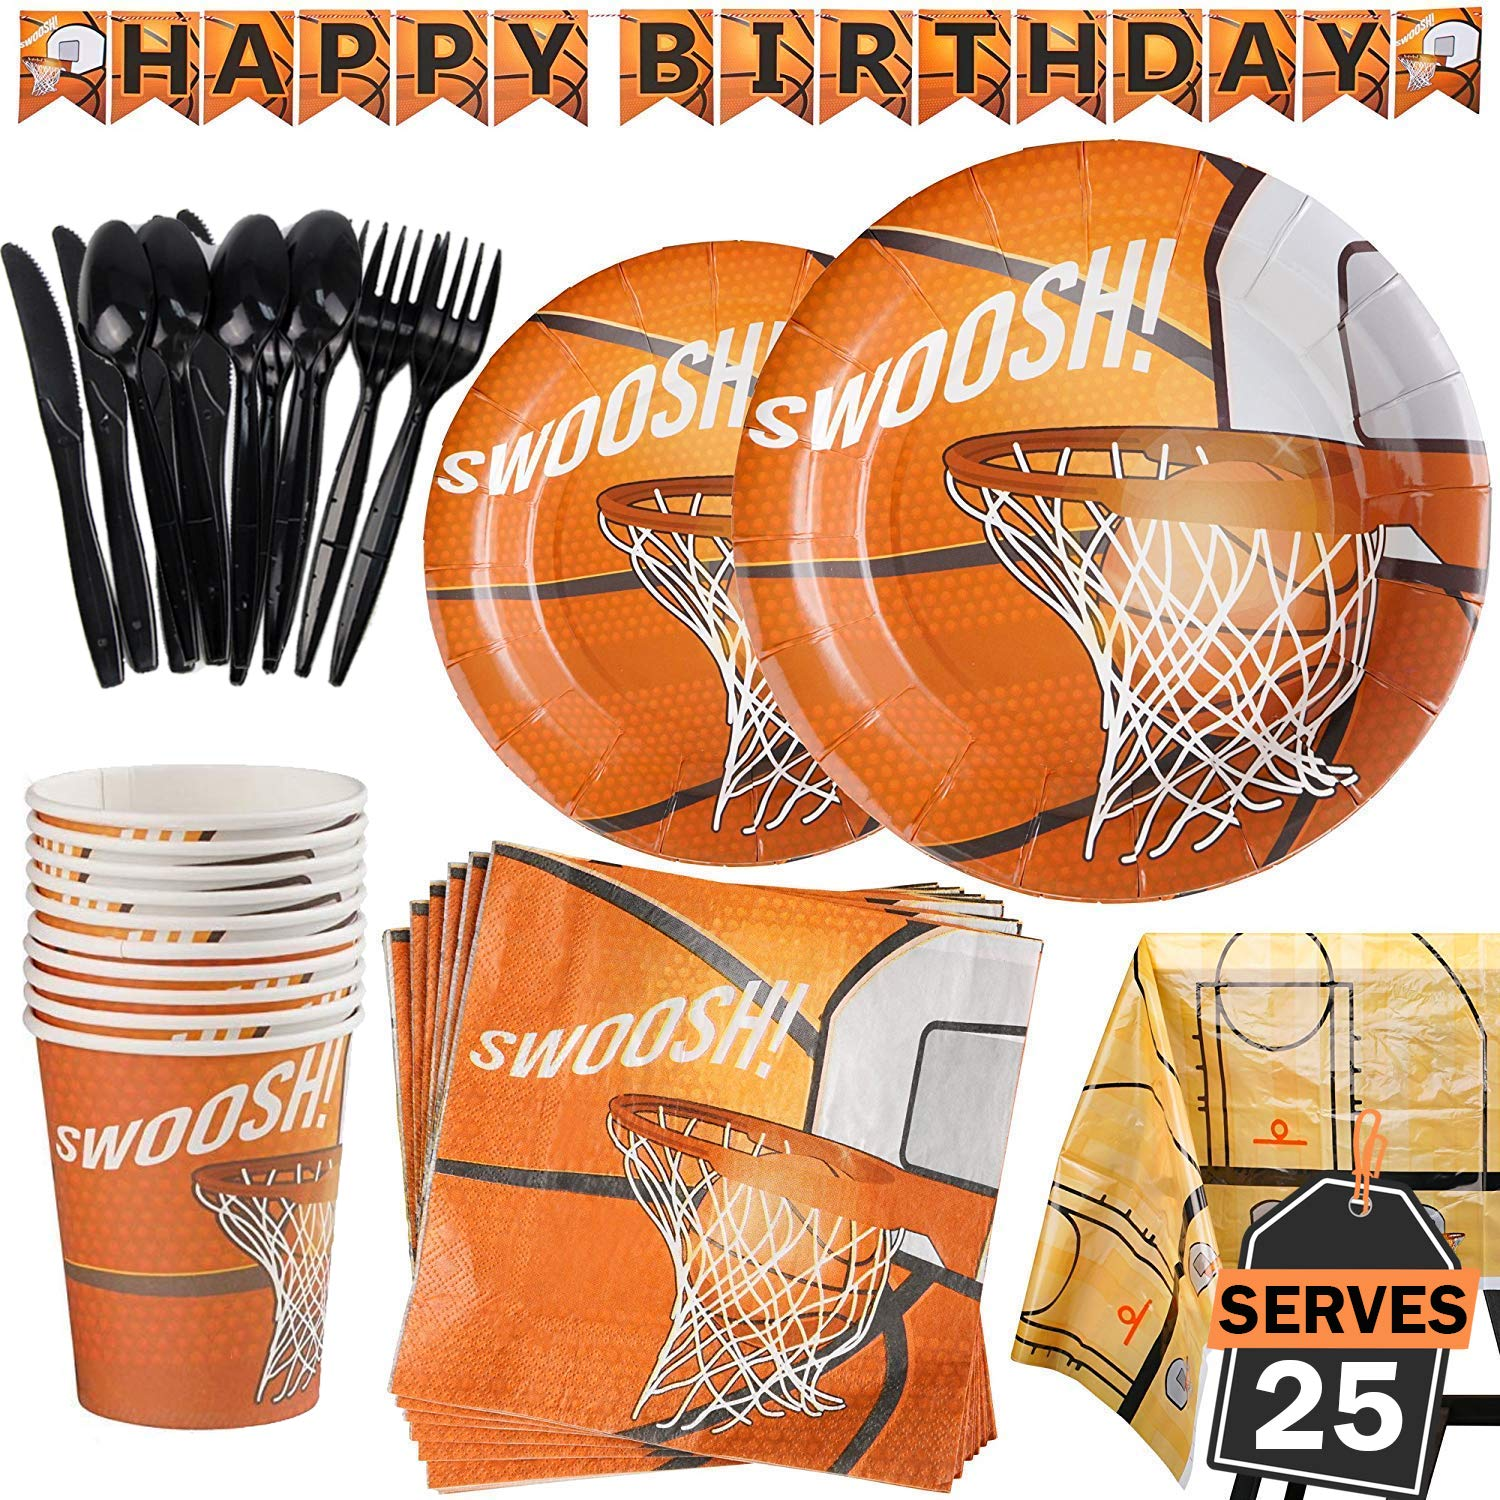 169 Piece Basketball Party Supplies Set Including Banner, Plates, Cups, Napkins, Cutlery, and Tablecloth, Serves 25 by Scale Rank